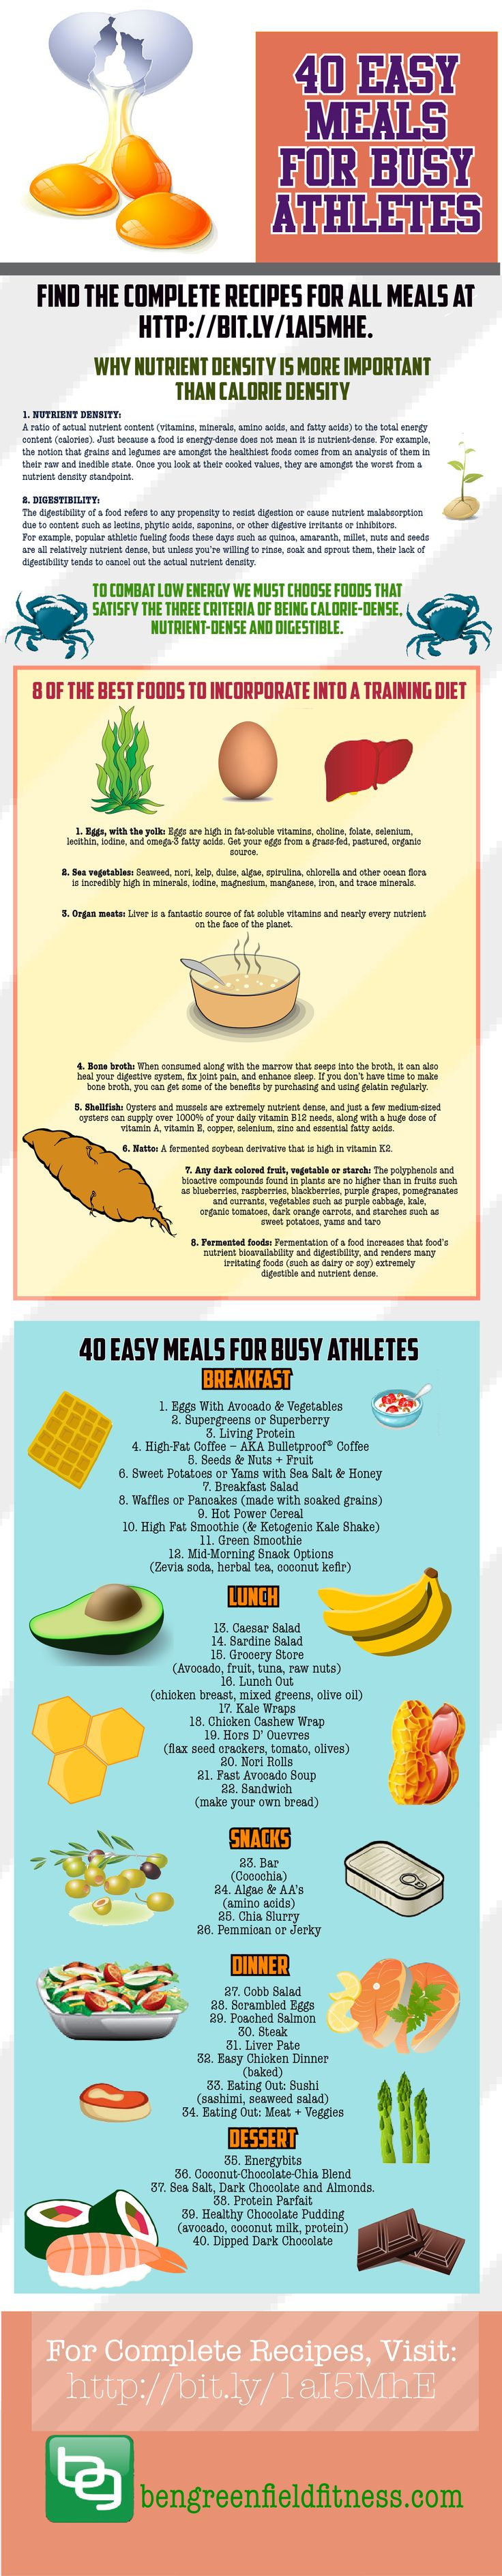 Comprehensive and simple list of the most easy-to-prepare, quick and nutrient-dense meals at http://www.bengreenfieldfitness.com/2013/07/easy-meals-for-busy-athletes/.